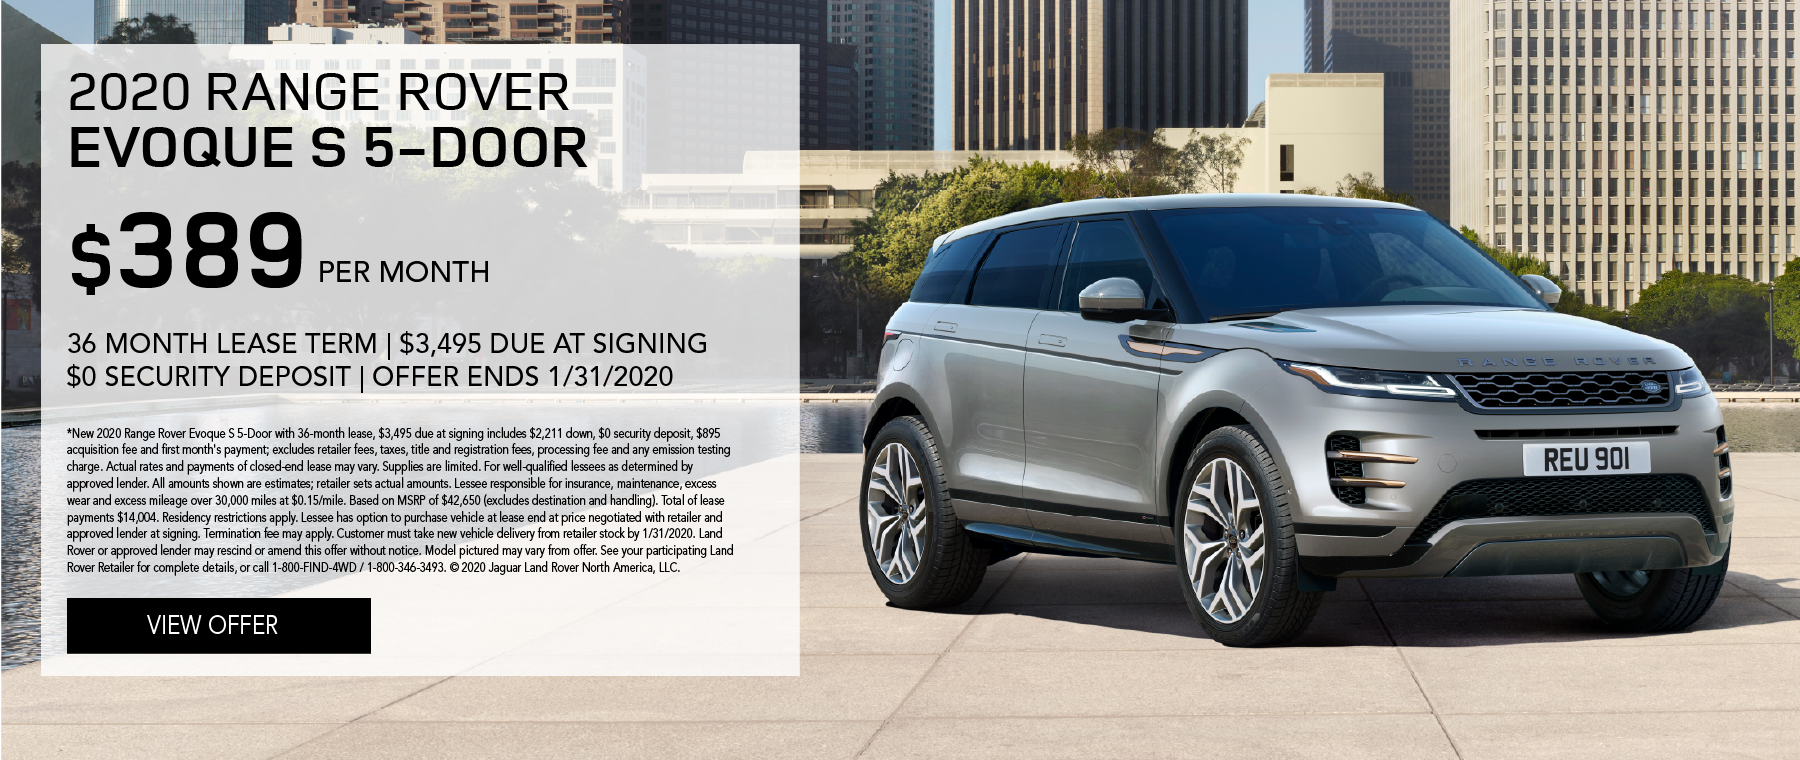 2020 Range Rover Evoque S 5-Door | $389/month | 36-month lease | 10,000 miles/year | $3,495 due at signing | $0 security deposit | expires 1/31/2020